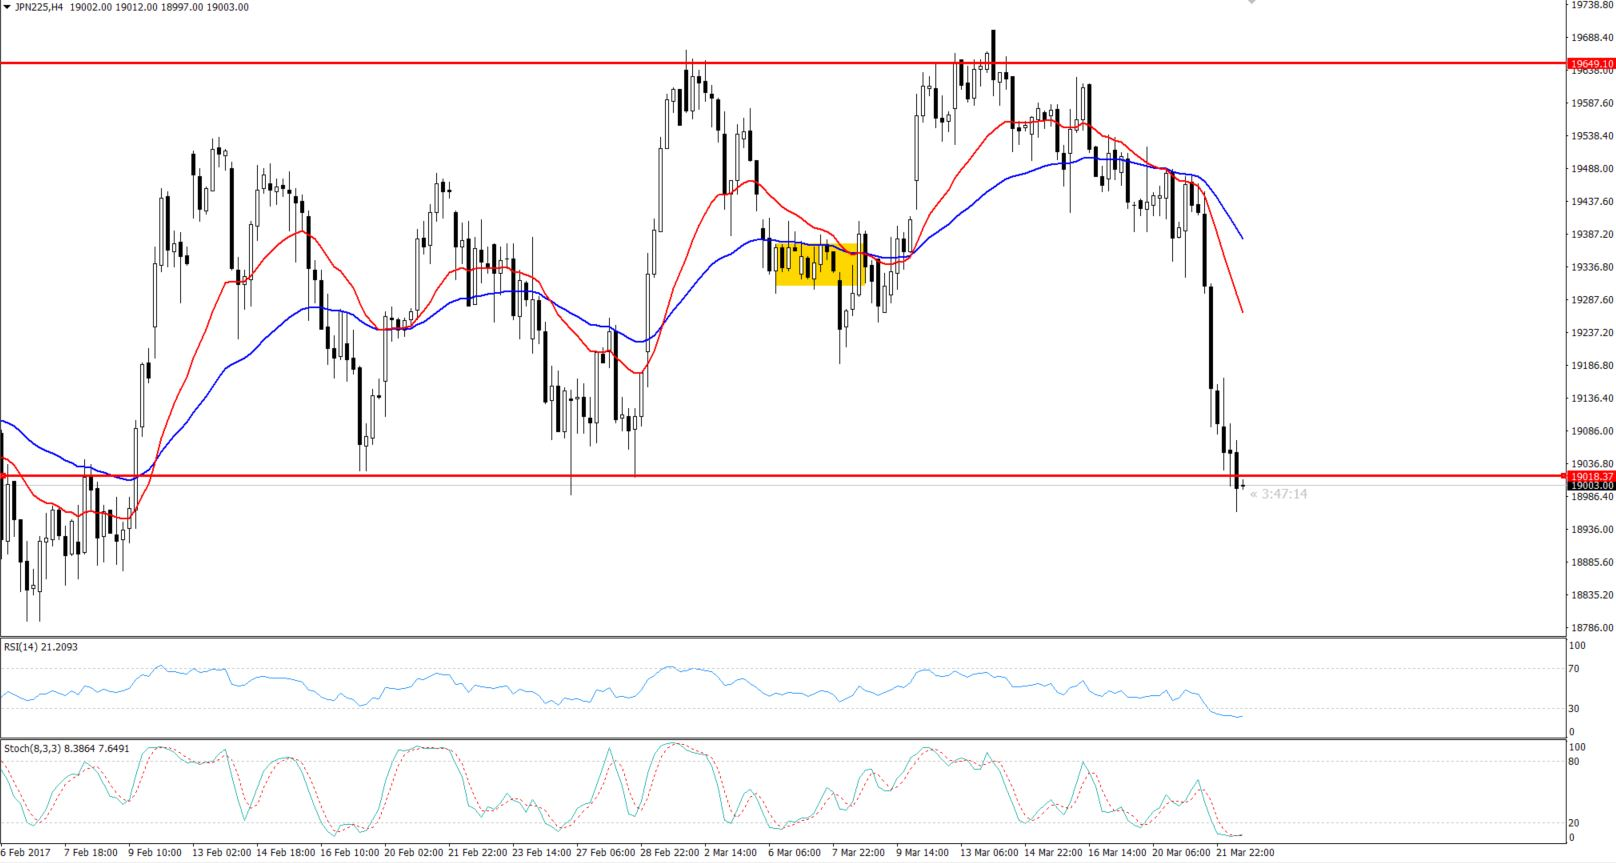 Nikkei 4 -Hourly Chart - Double Bottom Pattern